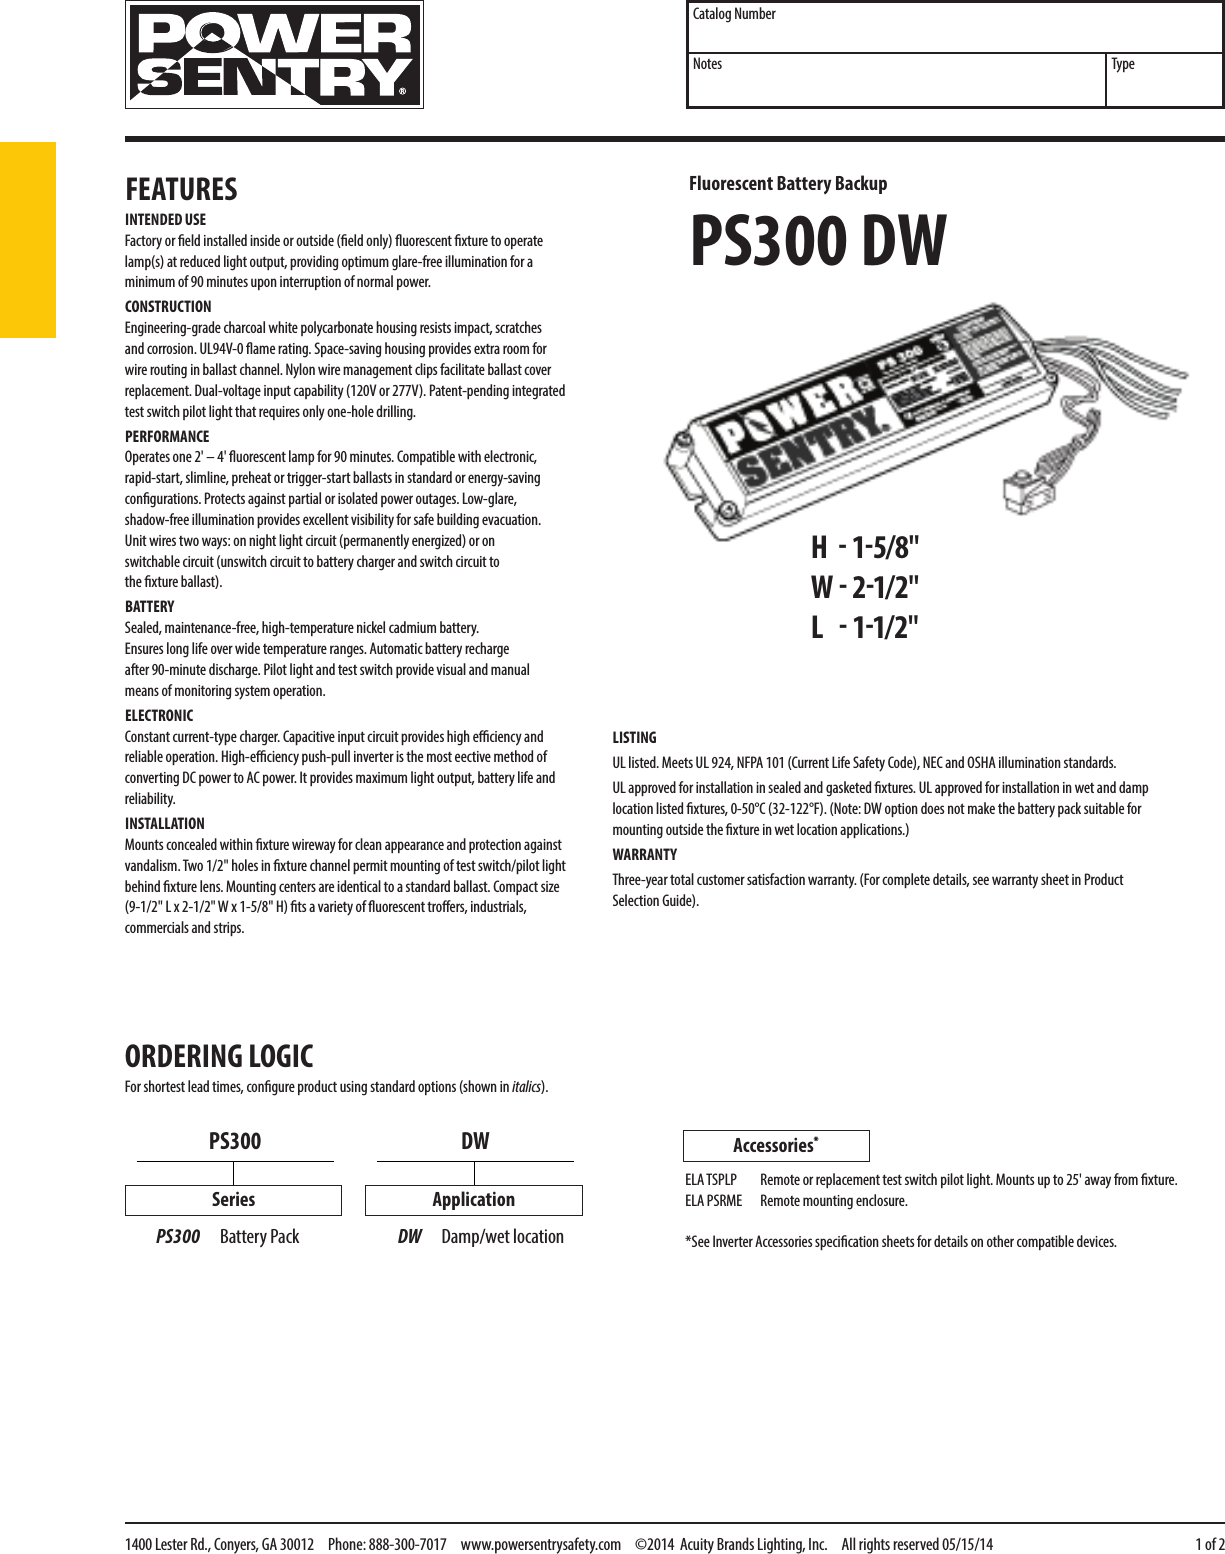 Wiring Diagram Power Sentry Ps300 Power